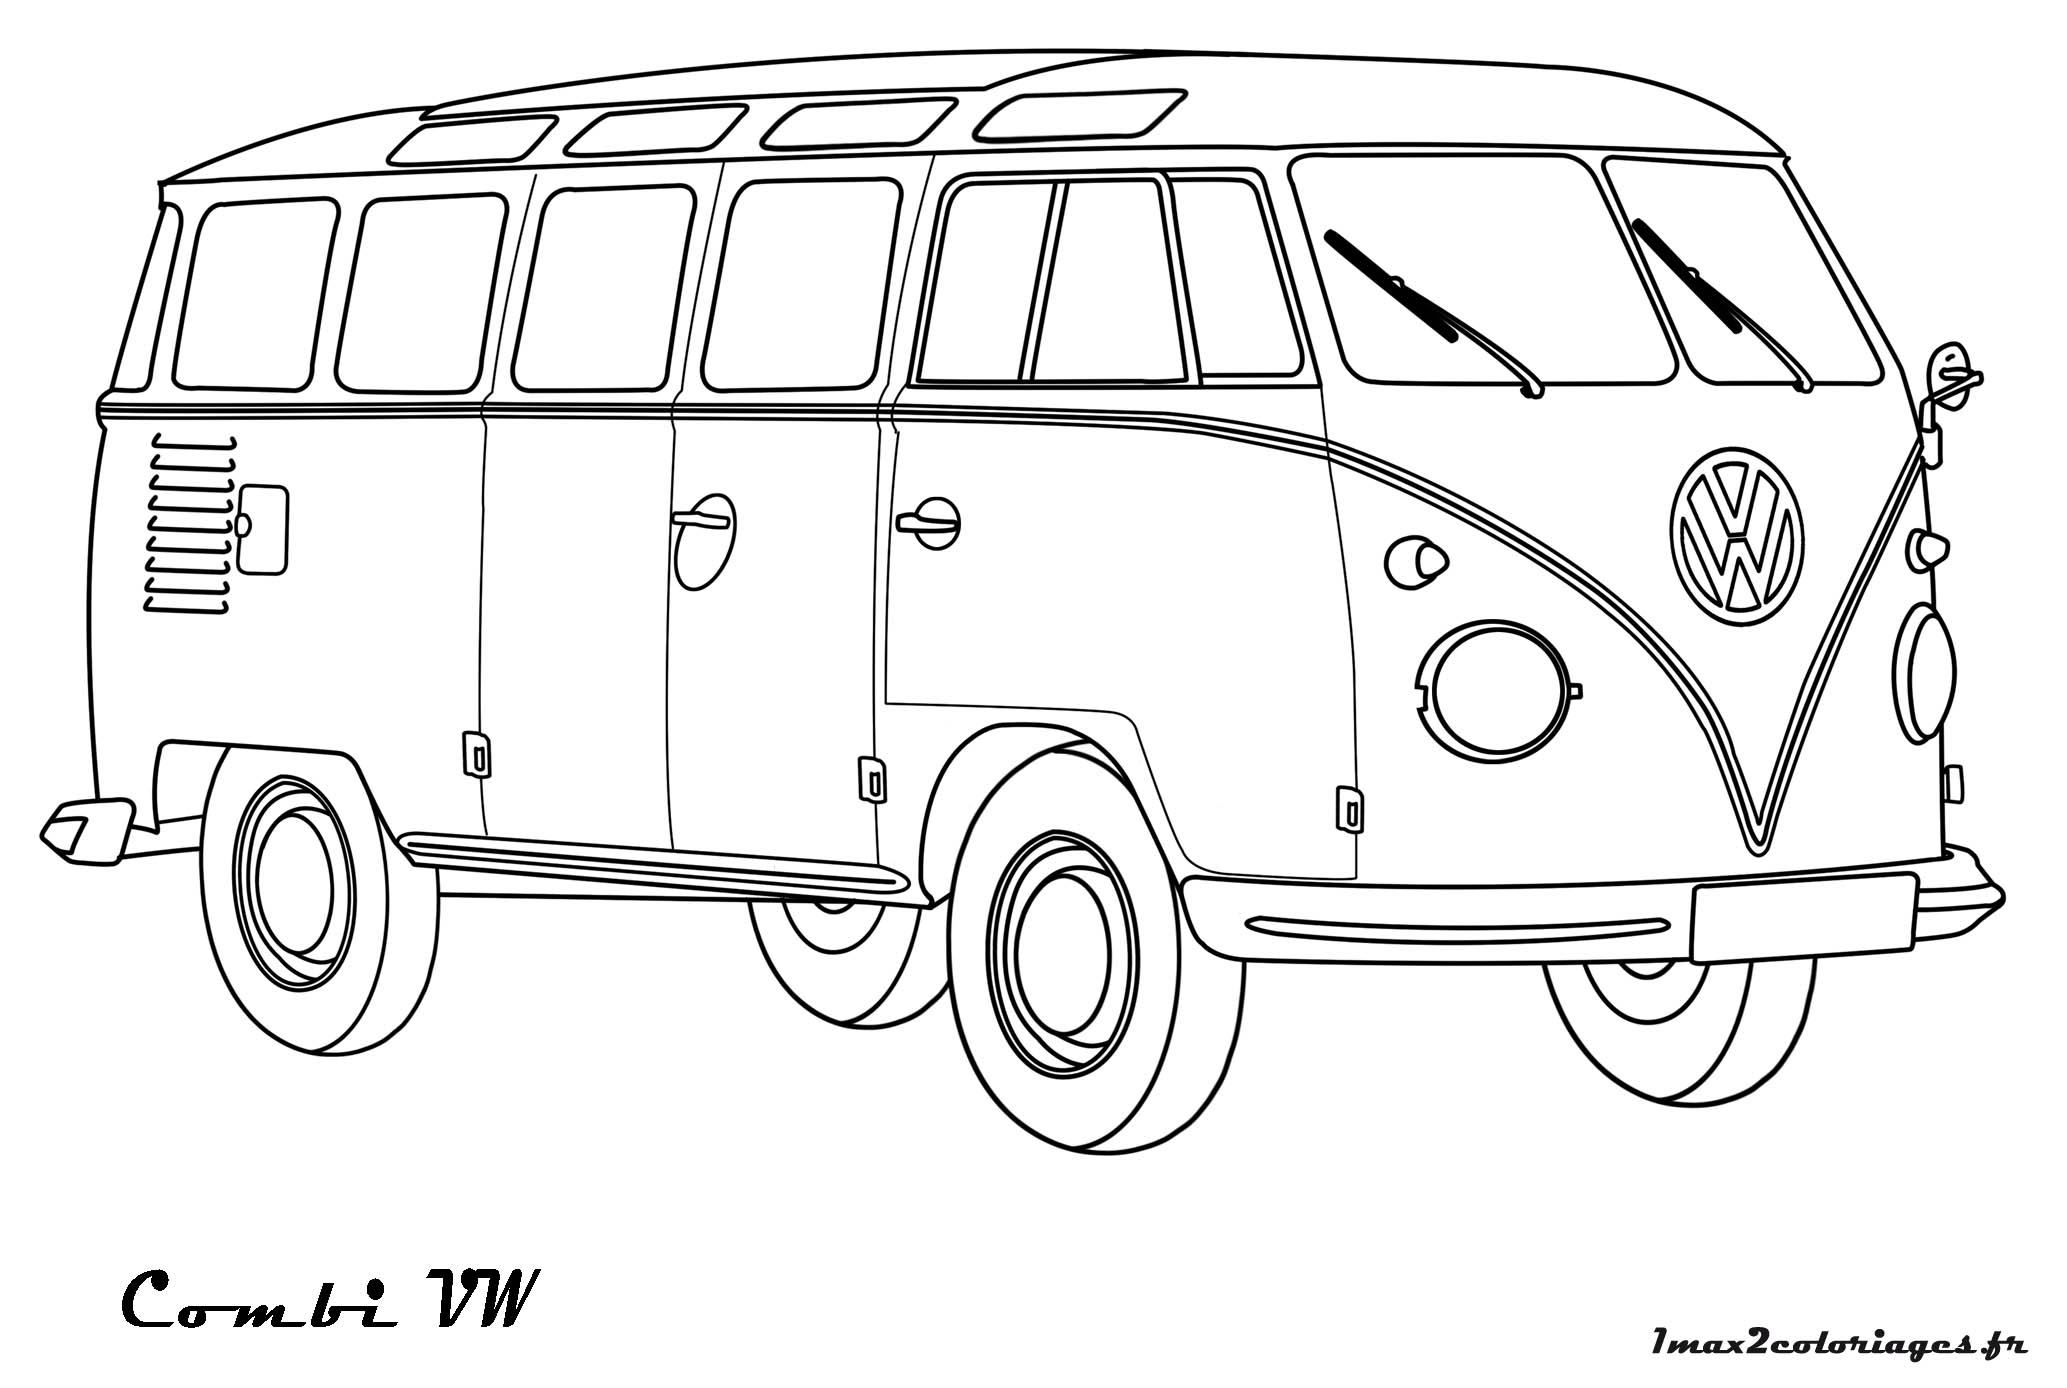 Muscle Car Coloring Pages moreover Deluge Of New Motorstorm 3a00  Apocalypse Screens And Concept Art together with Vw Cartoon in addition Muscle Car Printables besides Dance 1760. on volkswagen street rod